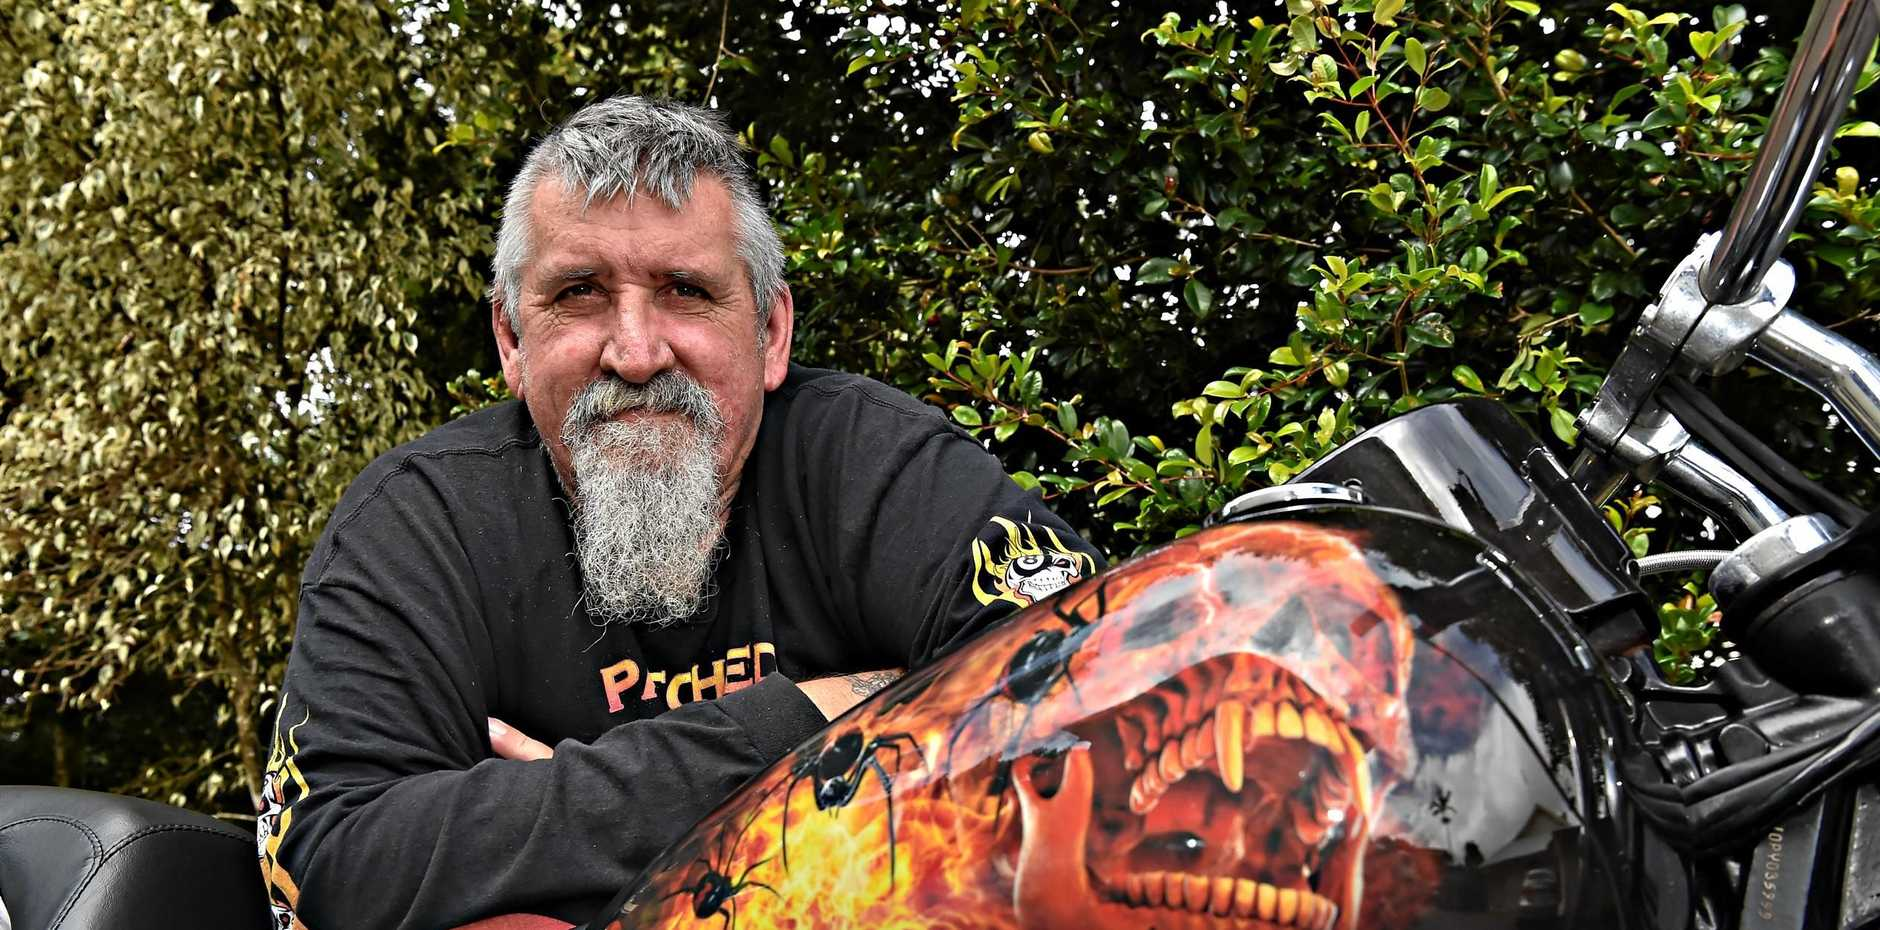 REVVED UP: Colin Dixon will attend this Sunday's Palmwoods Car Festival with his unique motorcycle.